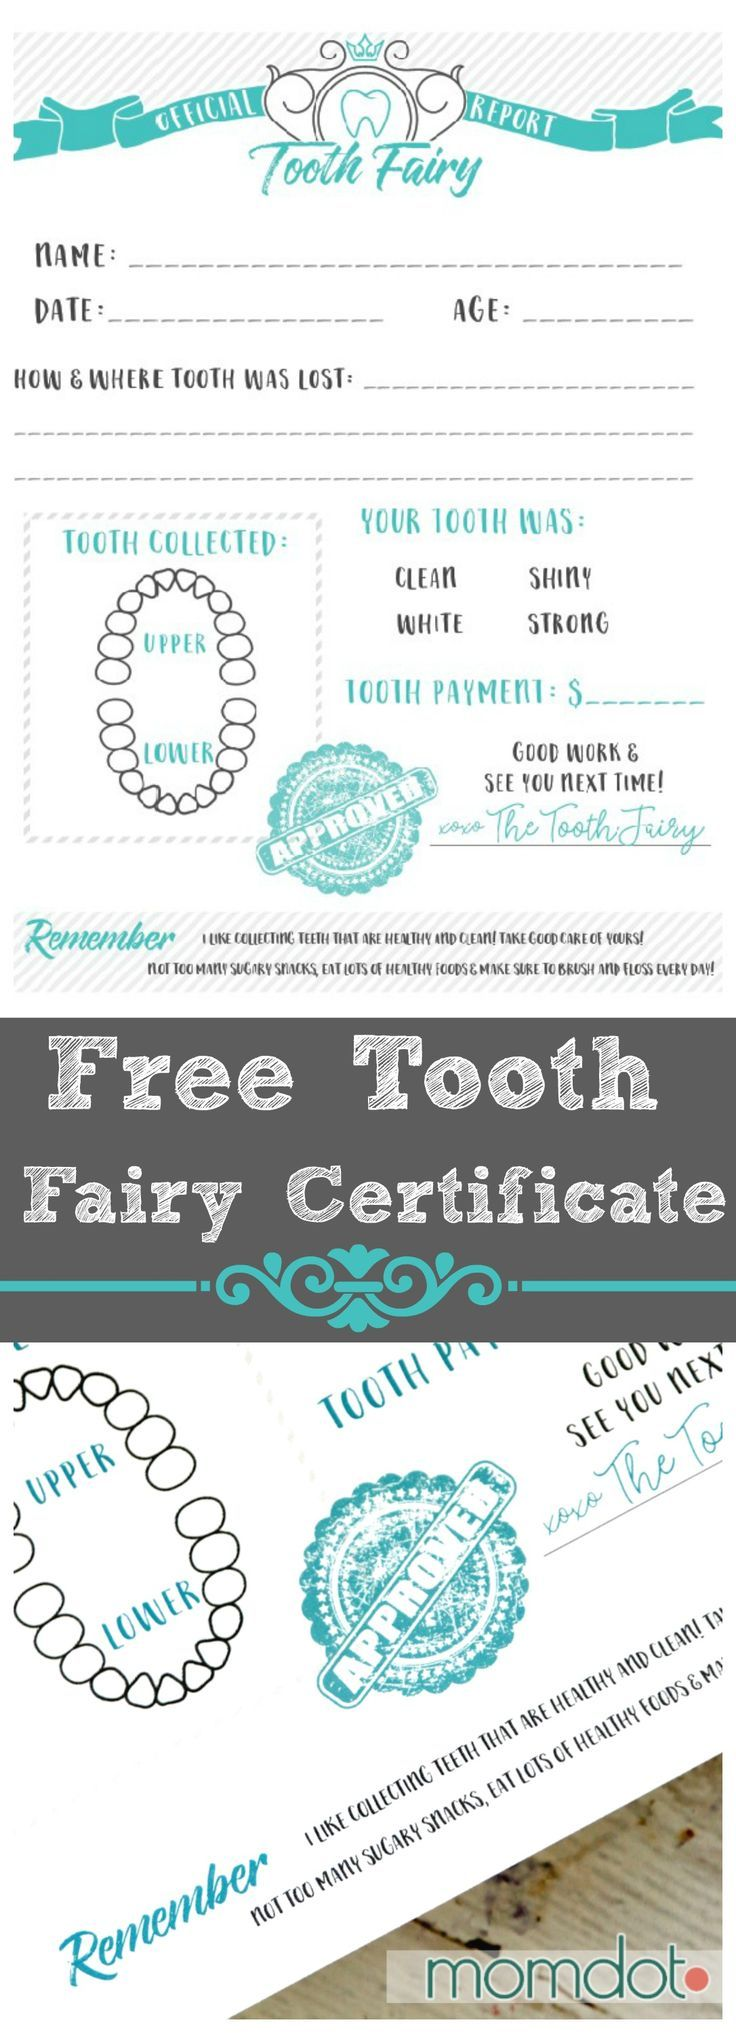 tooth fairy printable certificate free printable letter from the tooth fairy instant print out and adorable for kids